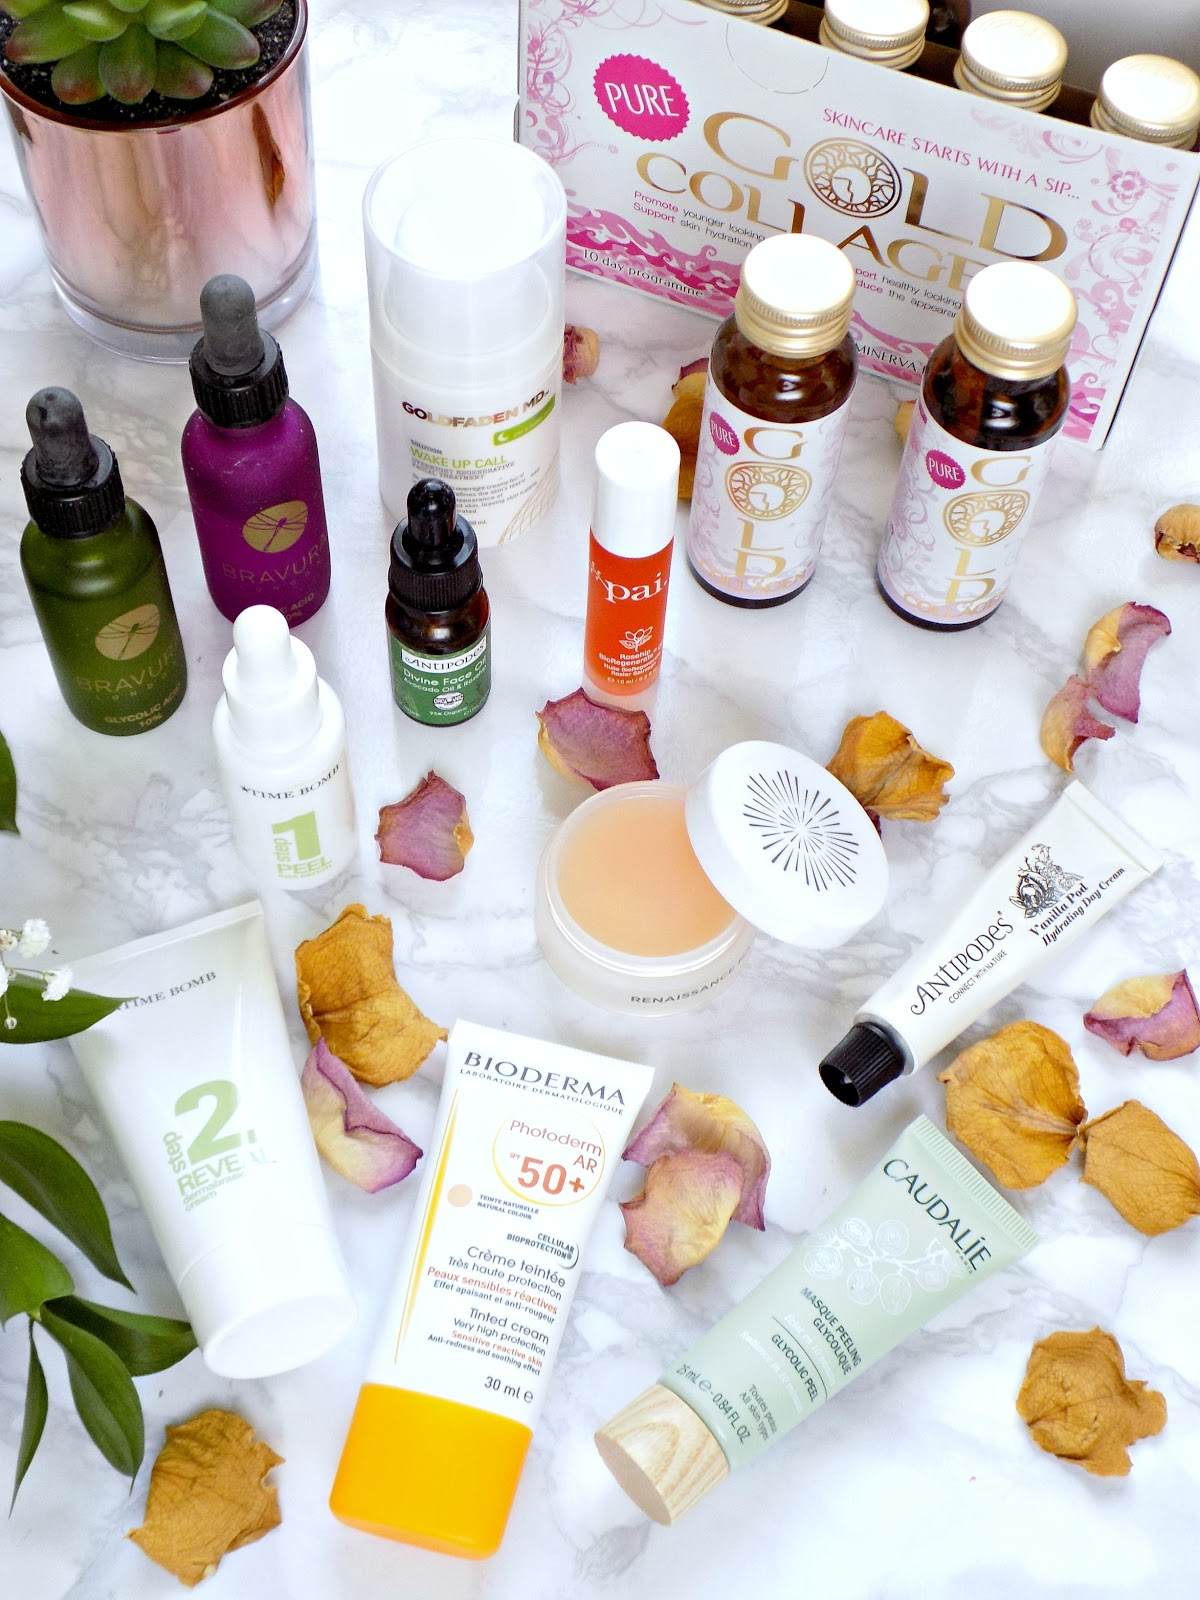 Skincare products to help looking younger